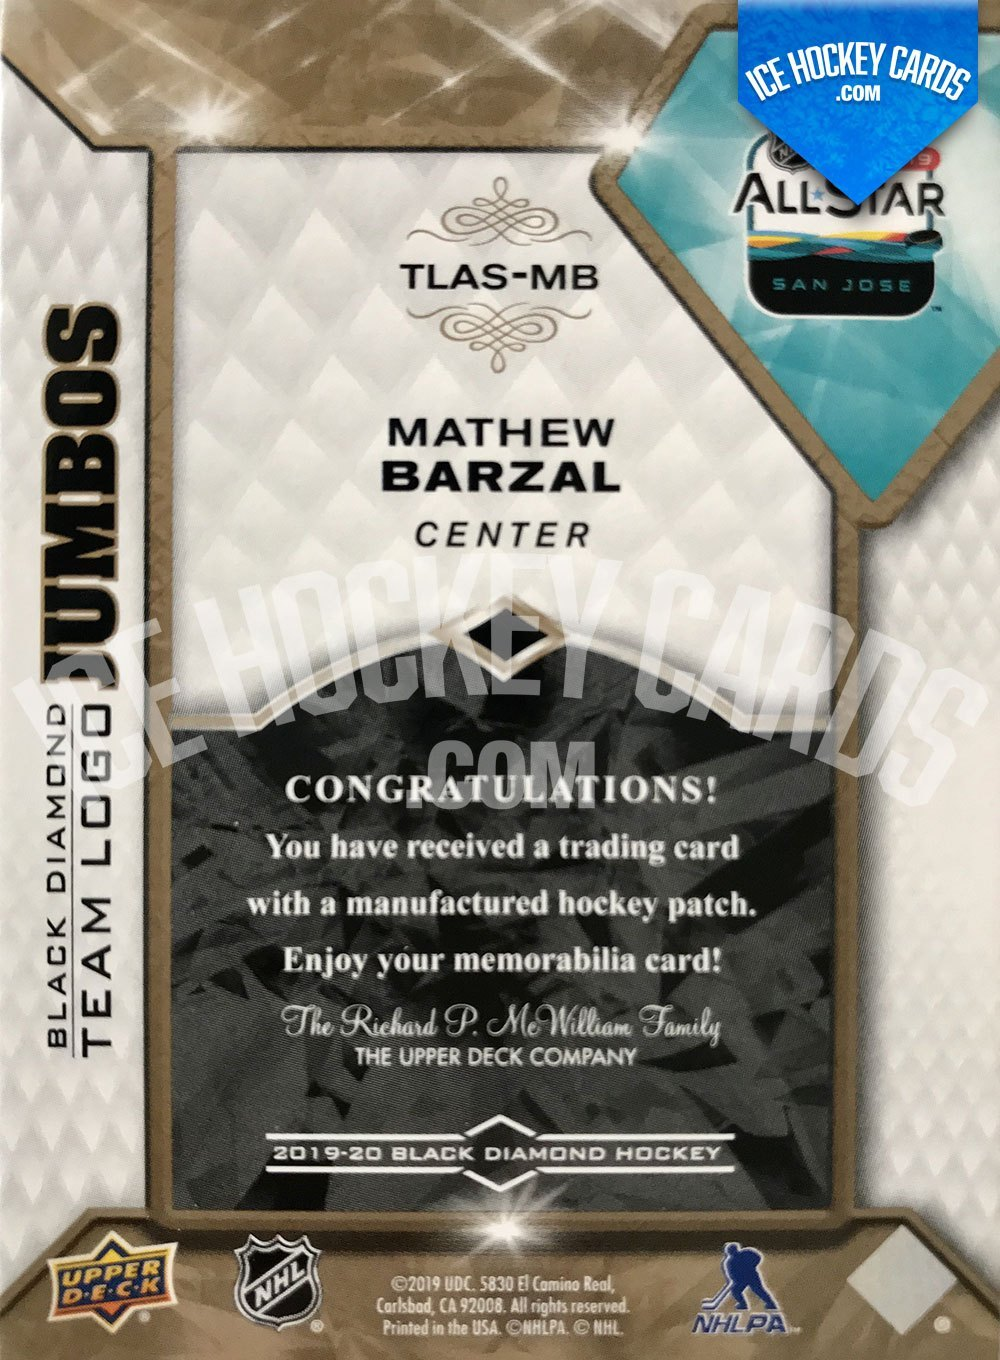 Upper Deck - Black Diamond 2019-20 - Mathew Barzal All-Star Team Logo Jumbos up to 15 cards back RARE